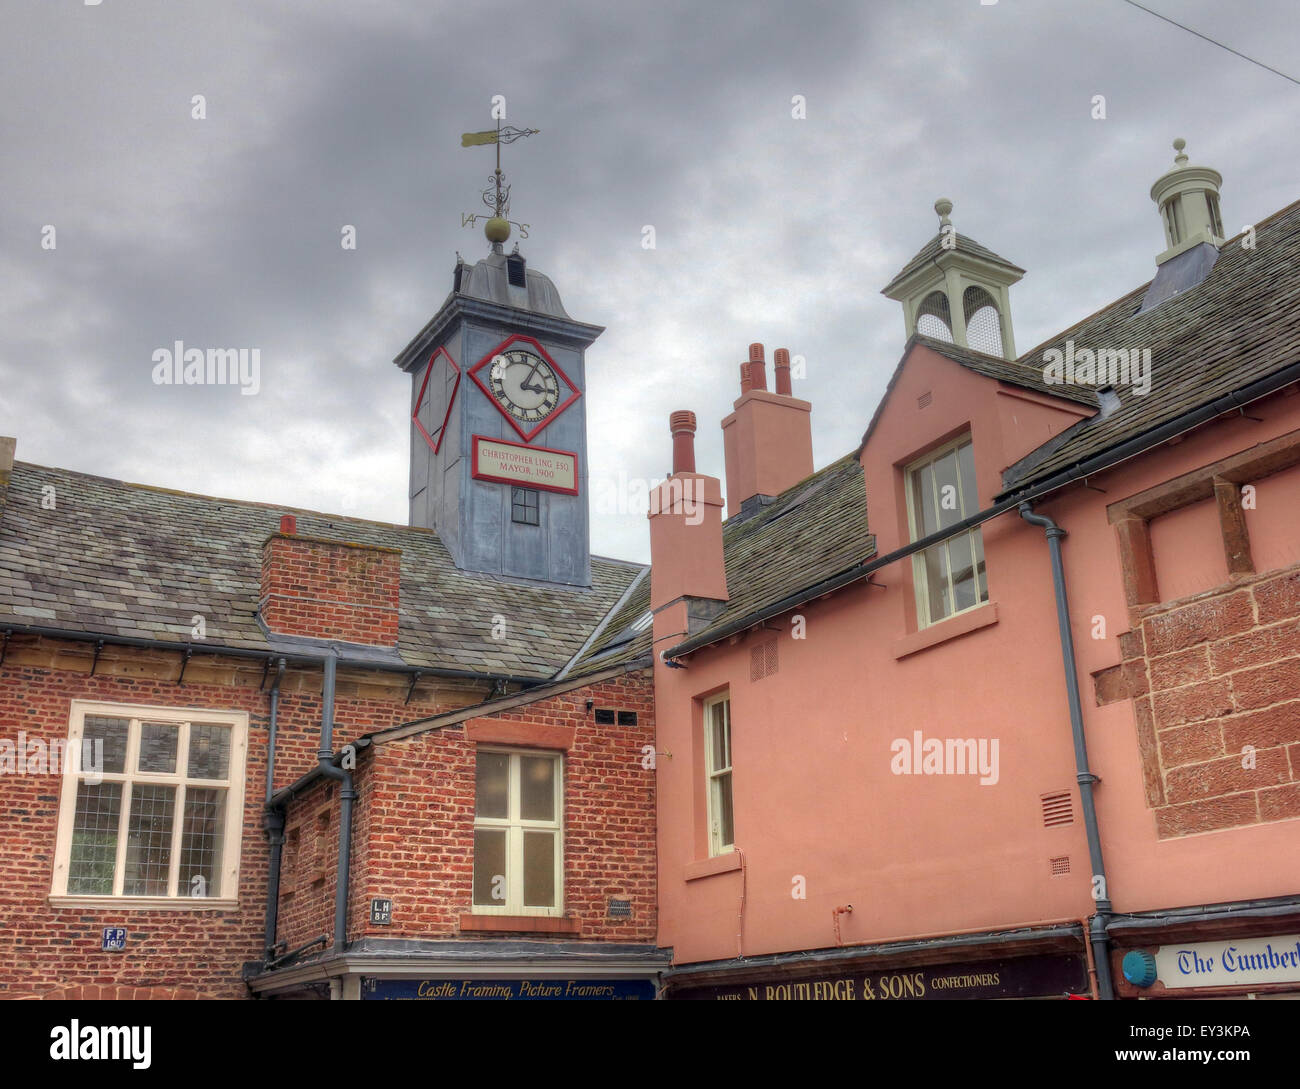 Carlisle Old Town Hall Clock,City Centre,Cumbria,England,UK - Stock Image